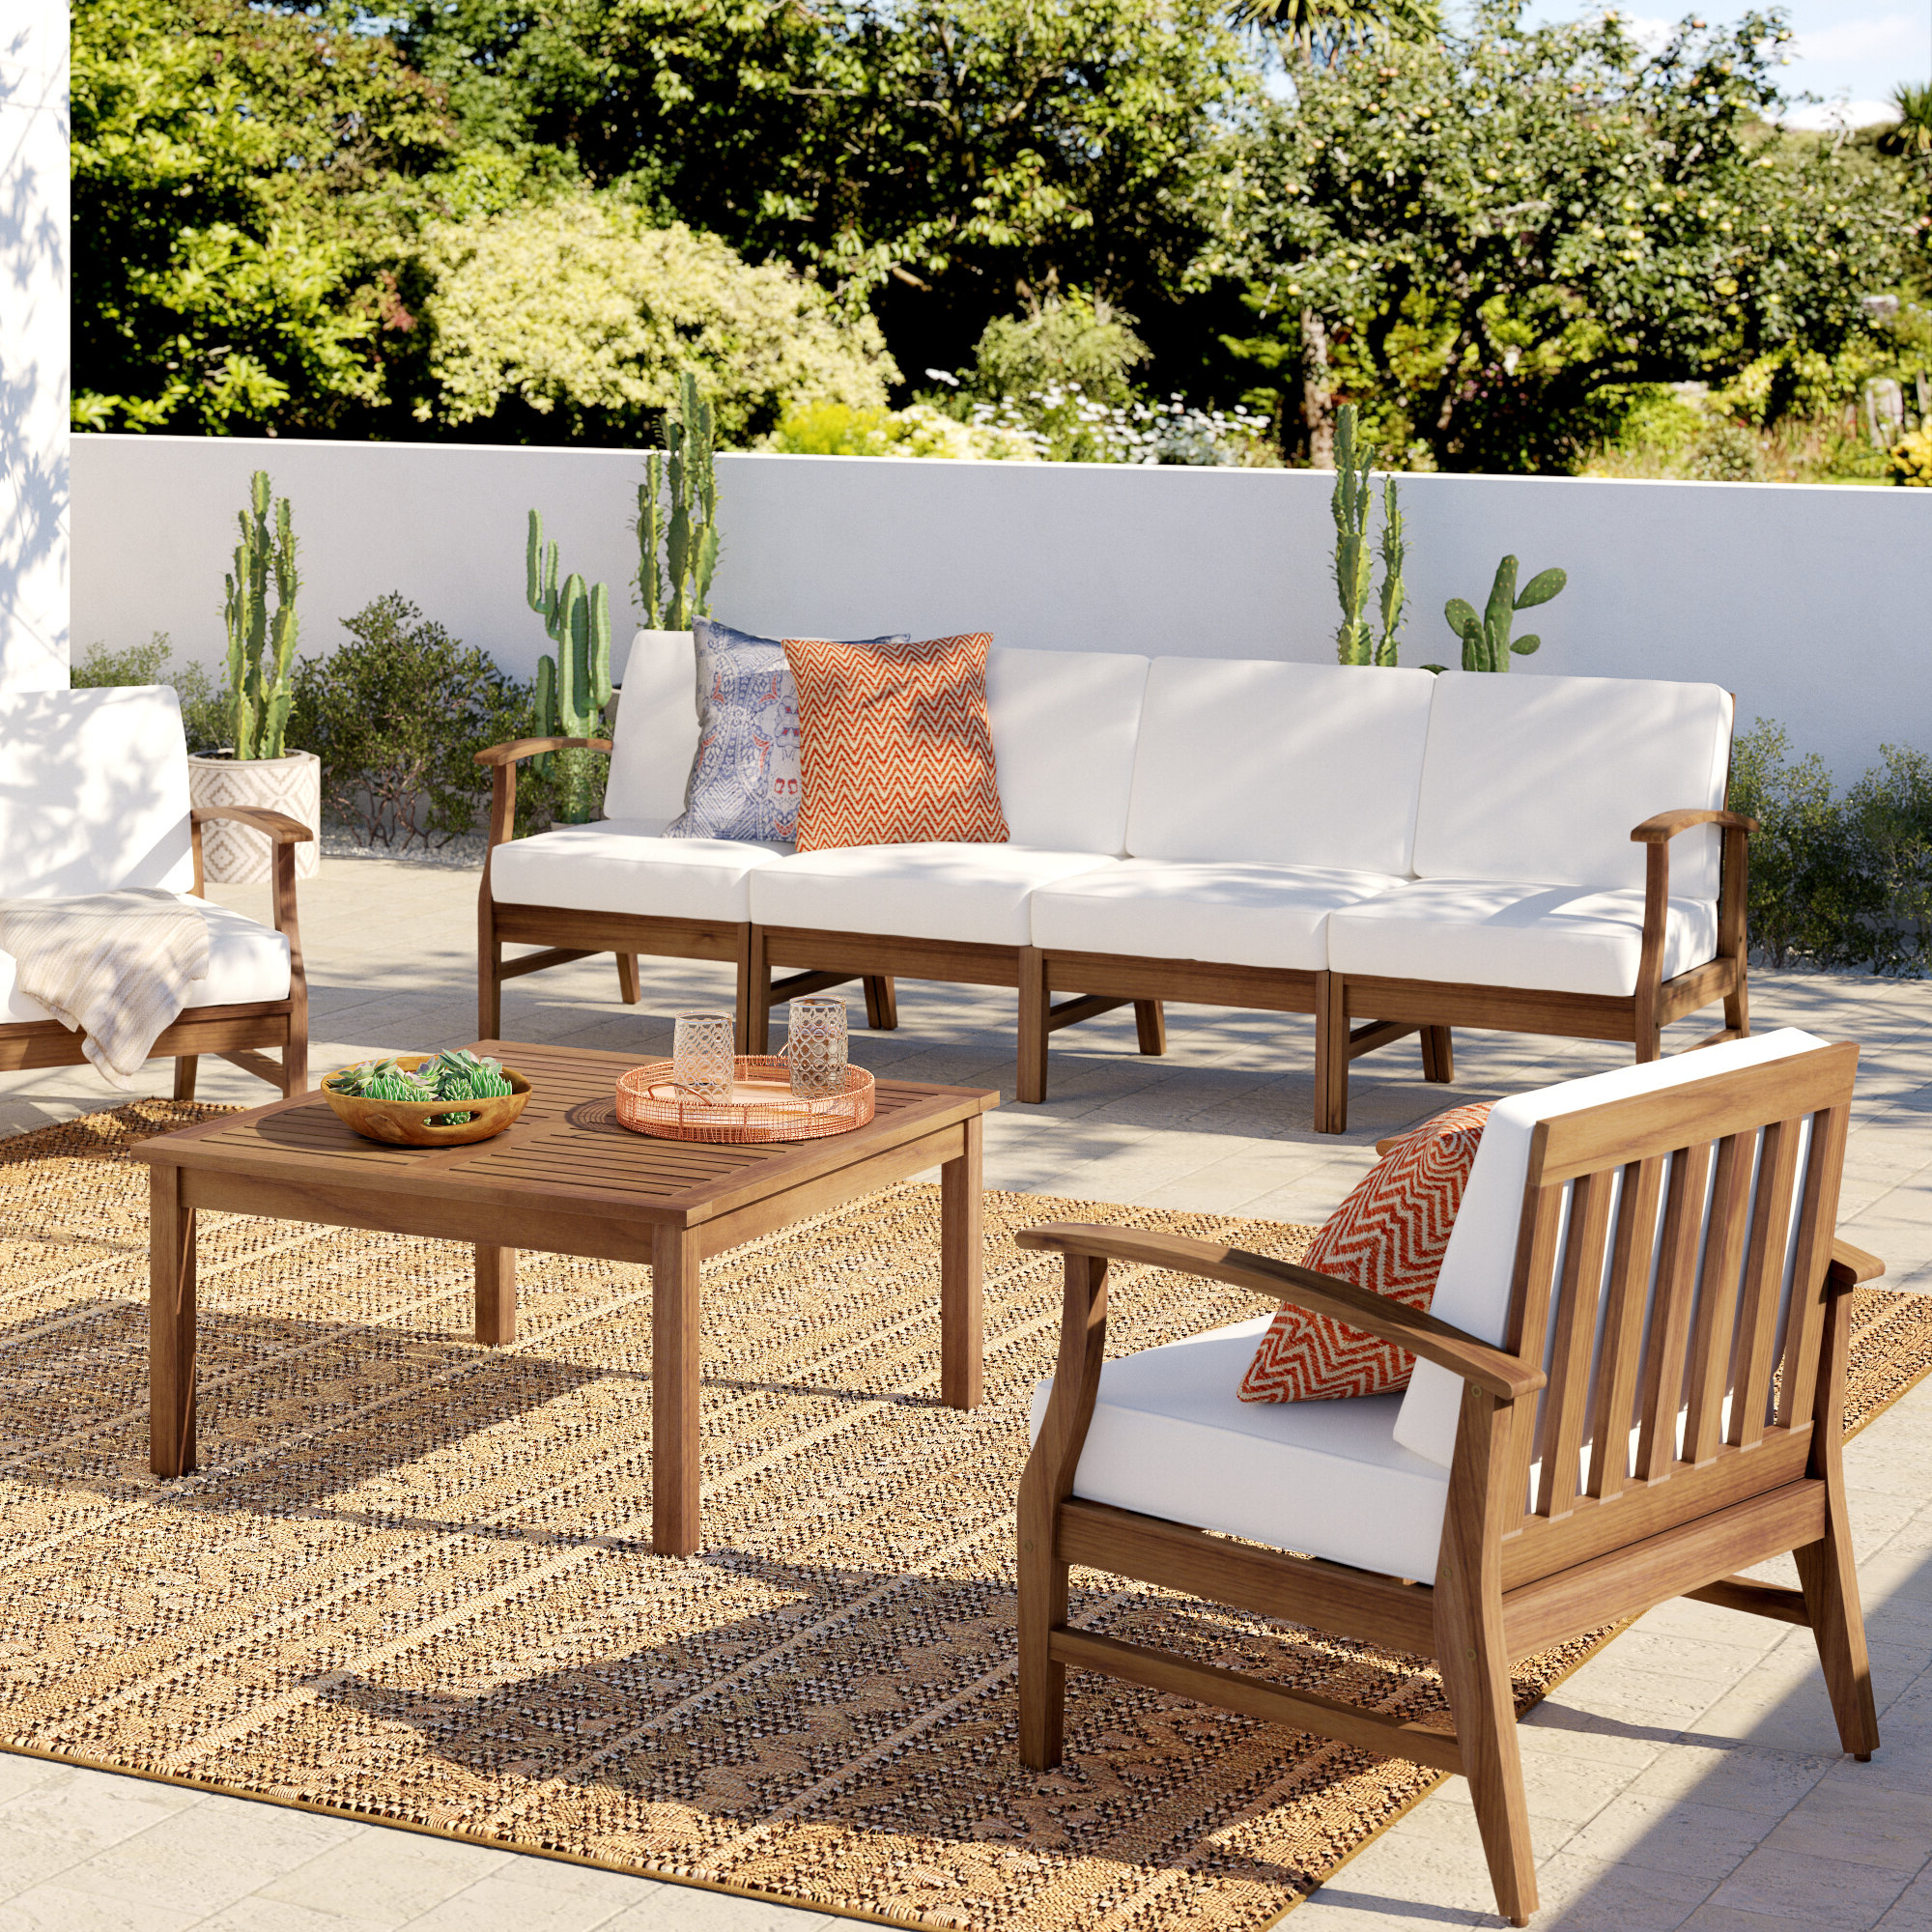 Most Recent Antonia Teak Patio Sectionals With Cushions For Antonia 4 Piece Sofa Set With Cushions (View 17 of 25)